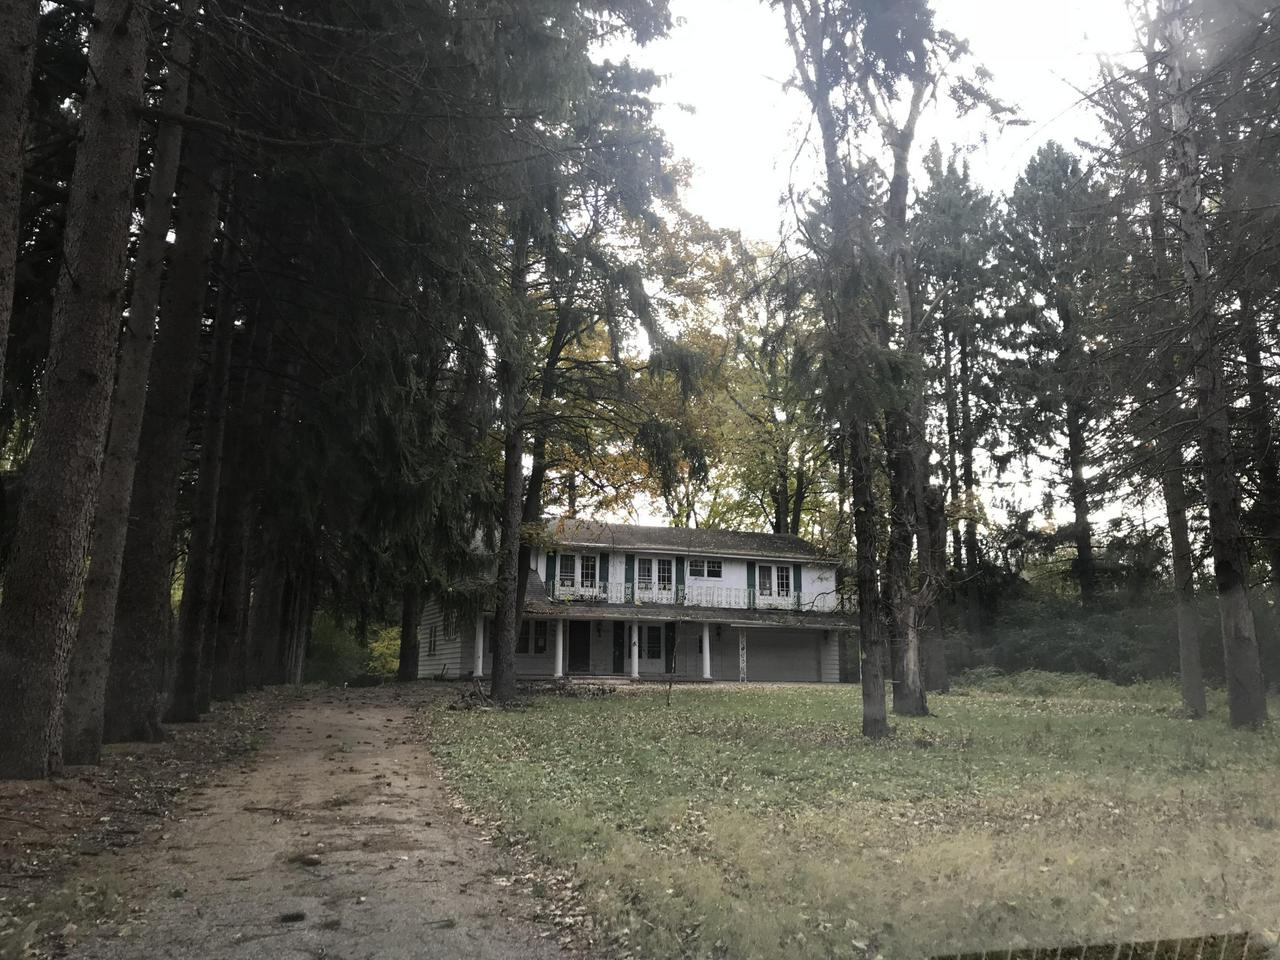 Always wanted a home on the Milwaukee River?  This one is priced just for you and all of your great ideas.  Beautiful 1st floor w/NFP and family rm w/french doors to brick deck and gorgeous wooded backyard.  1 bedroom and full bath on 1st floor.  2nd fl. has 3 bedrooms, 1 full bath and a master suite w/nfp. Double sink in master bath. This home offers a great starting point for a absolutely beautiful home.  Make it yours!  Natural Fire Place (2), French Door in many of the rooms. Crown Molding,